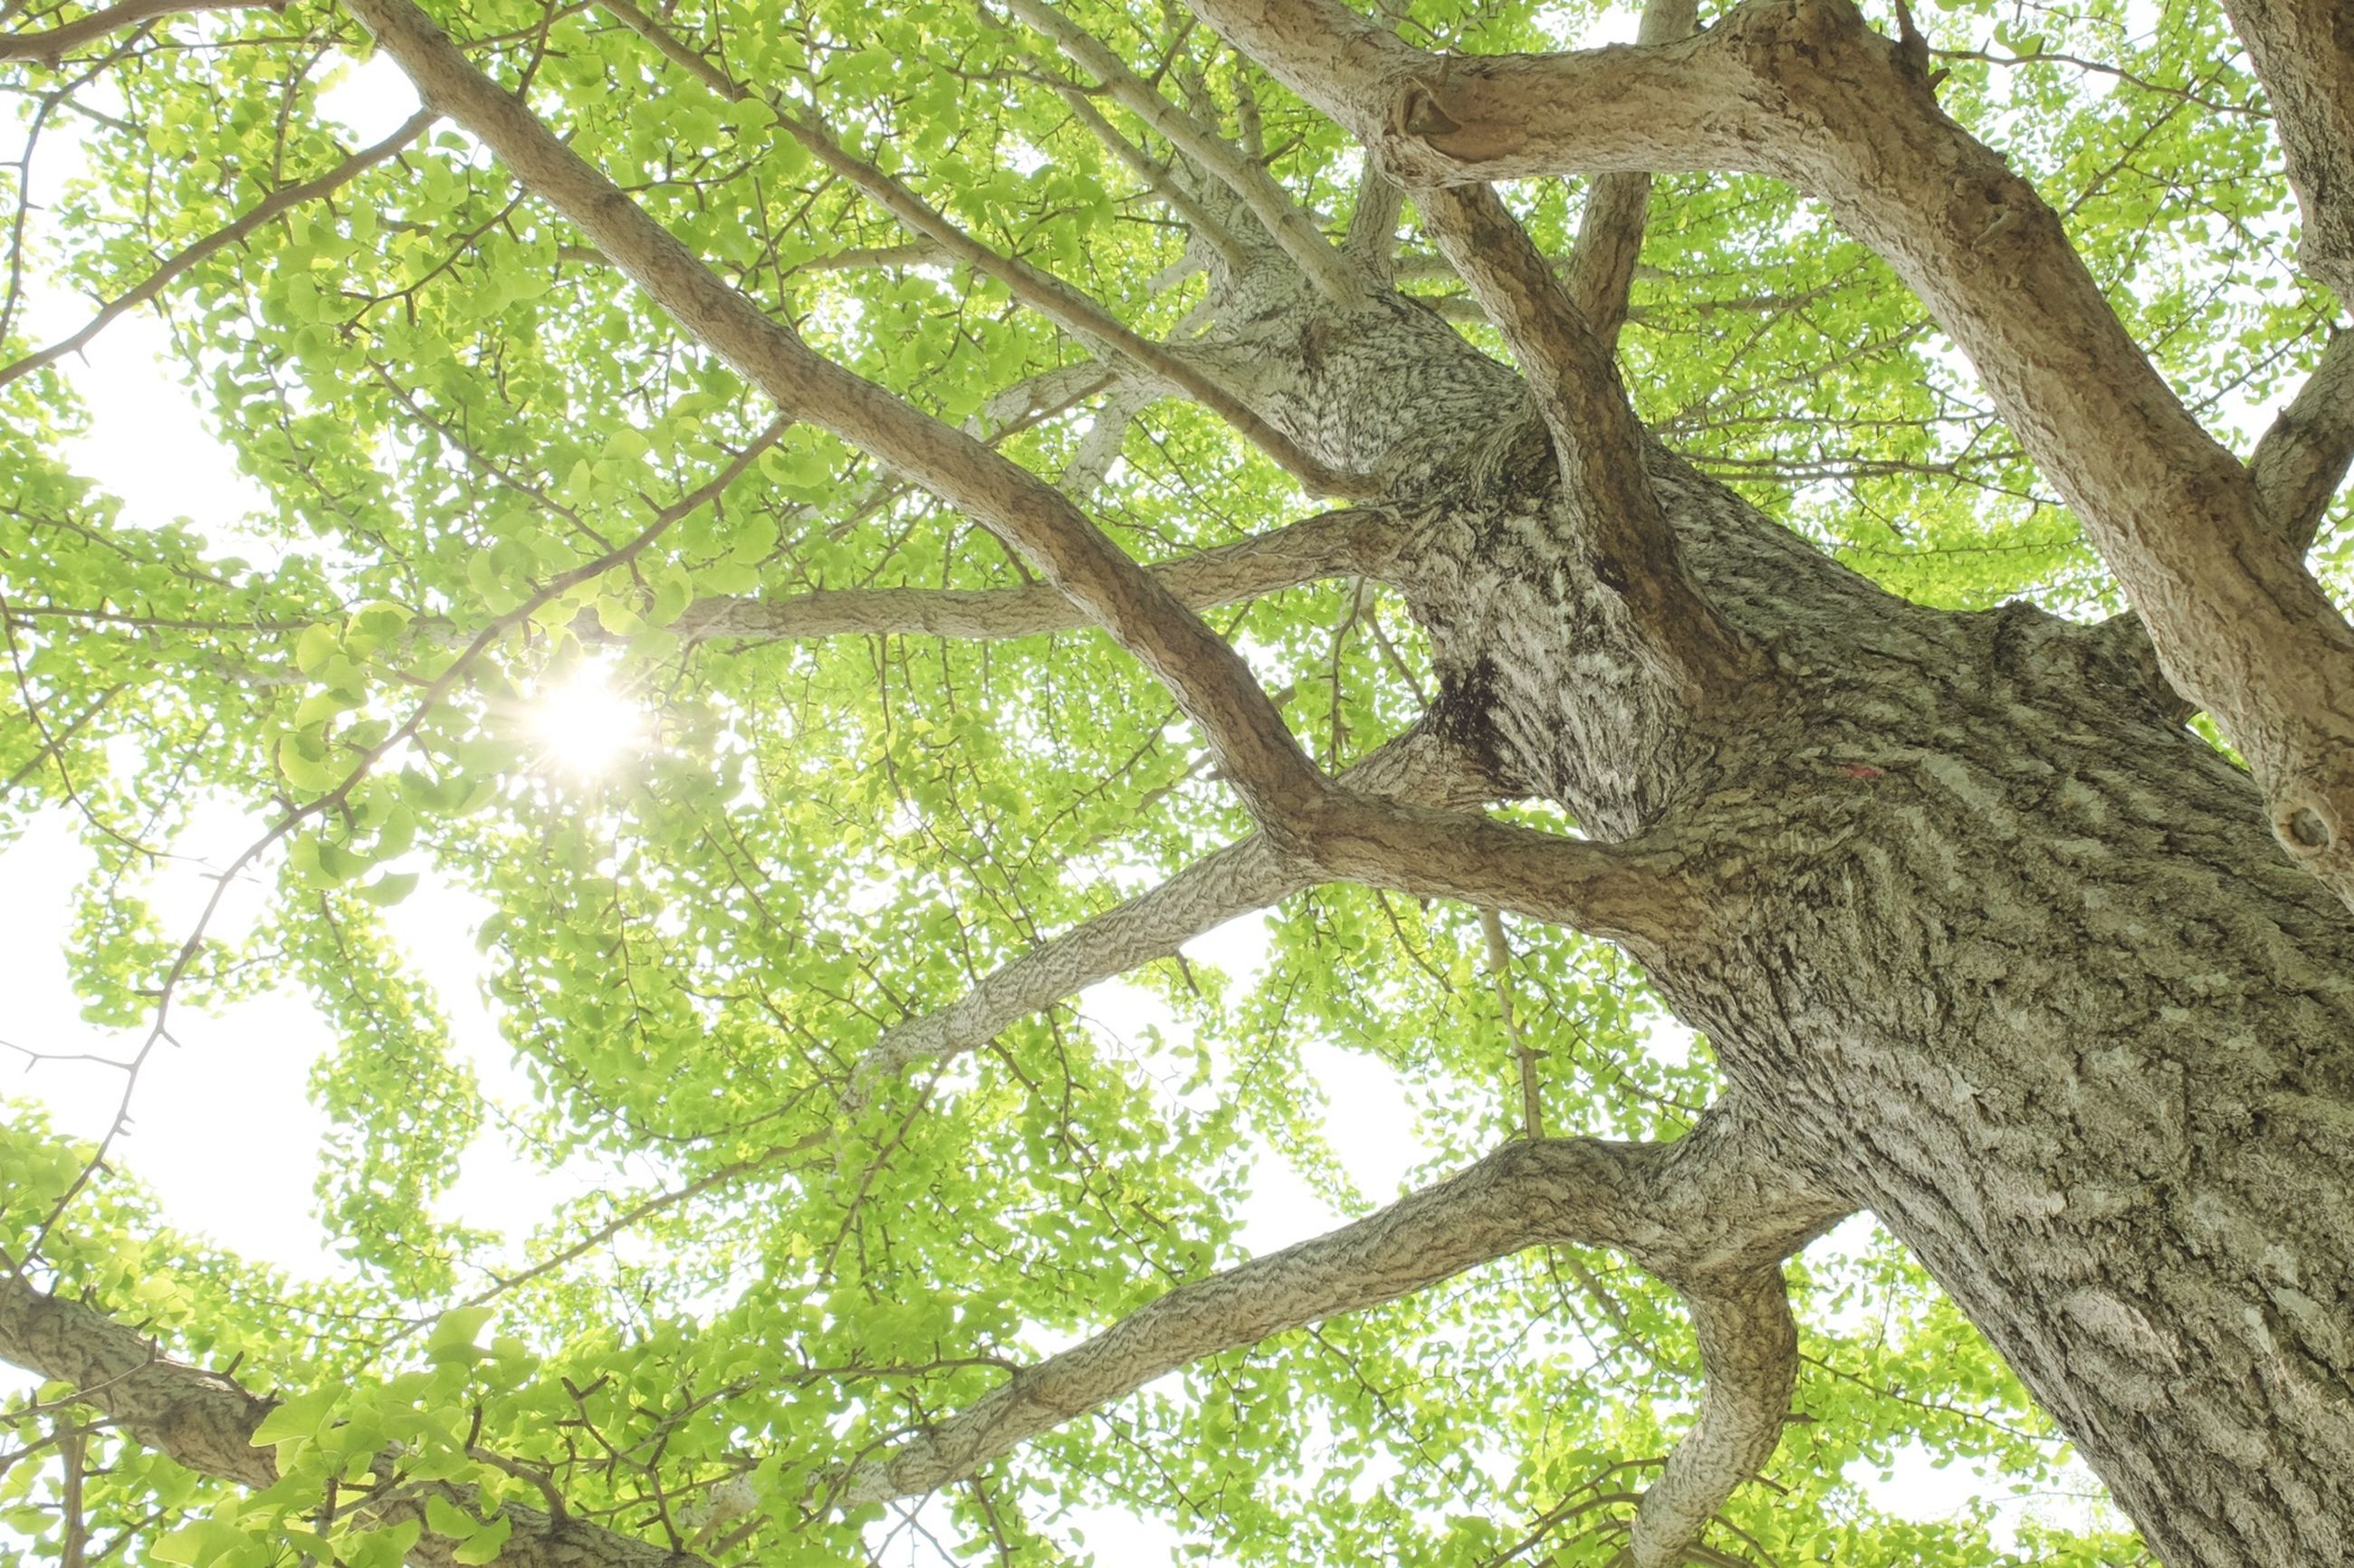 tree, low angle view, branch, sun, growth, tree trunk, sunlight, nature, sunbeam, tranquility, lens flare, green color, beauty in nature, day, leaf, forest, outdoors, sunny, no people, sky